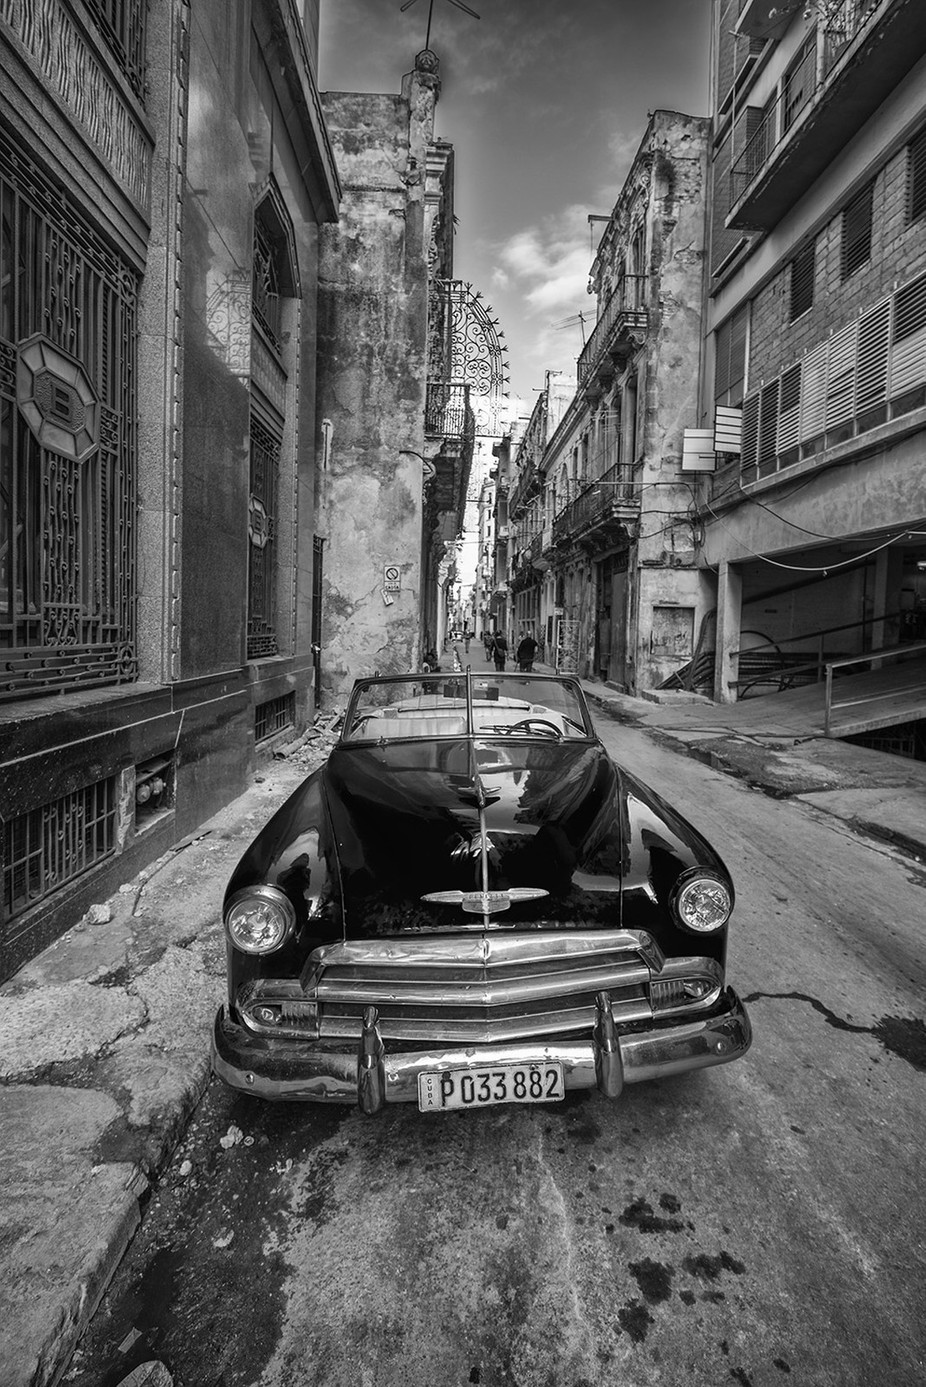 Havana by vladimirchuyko - My Favorite City Photo Contest